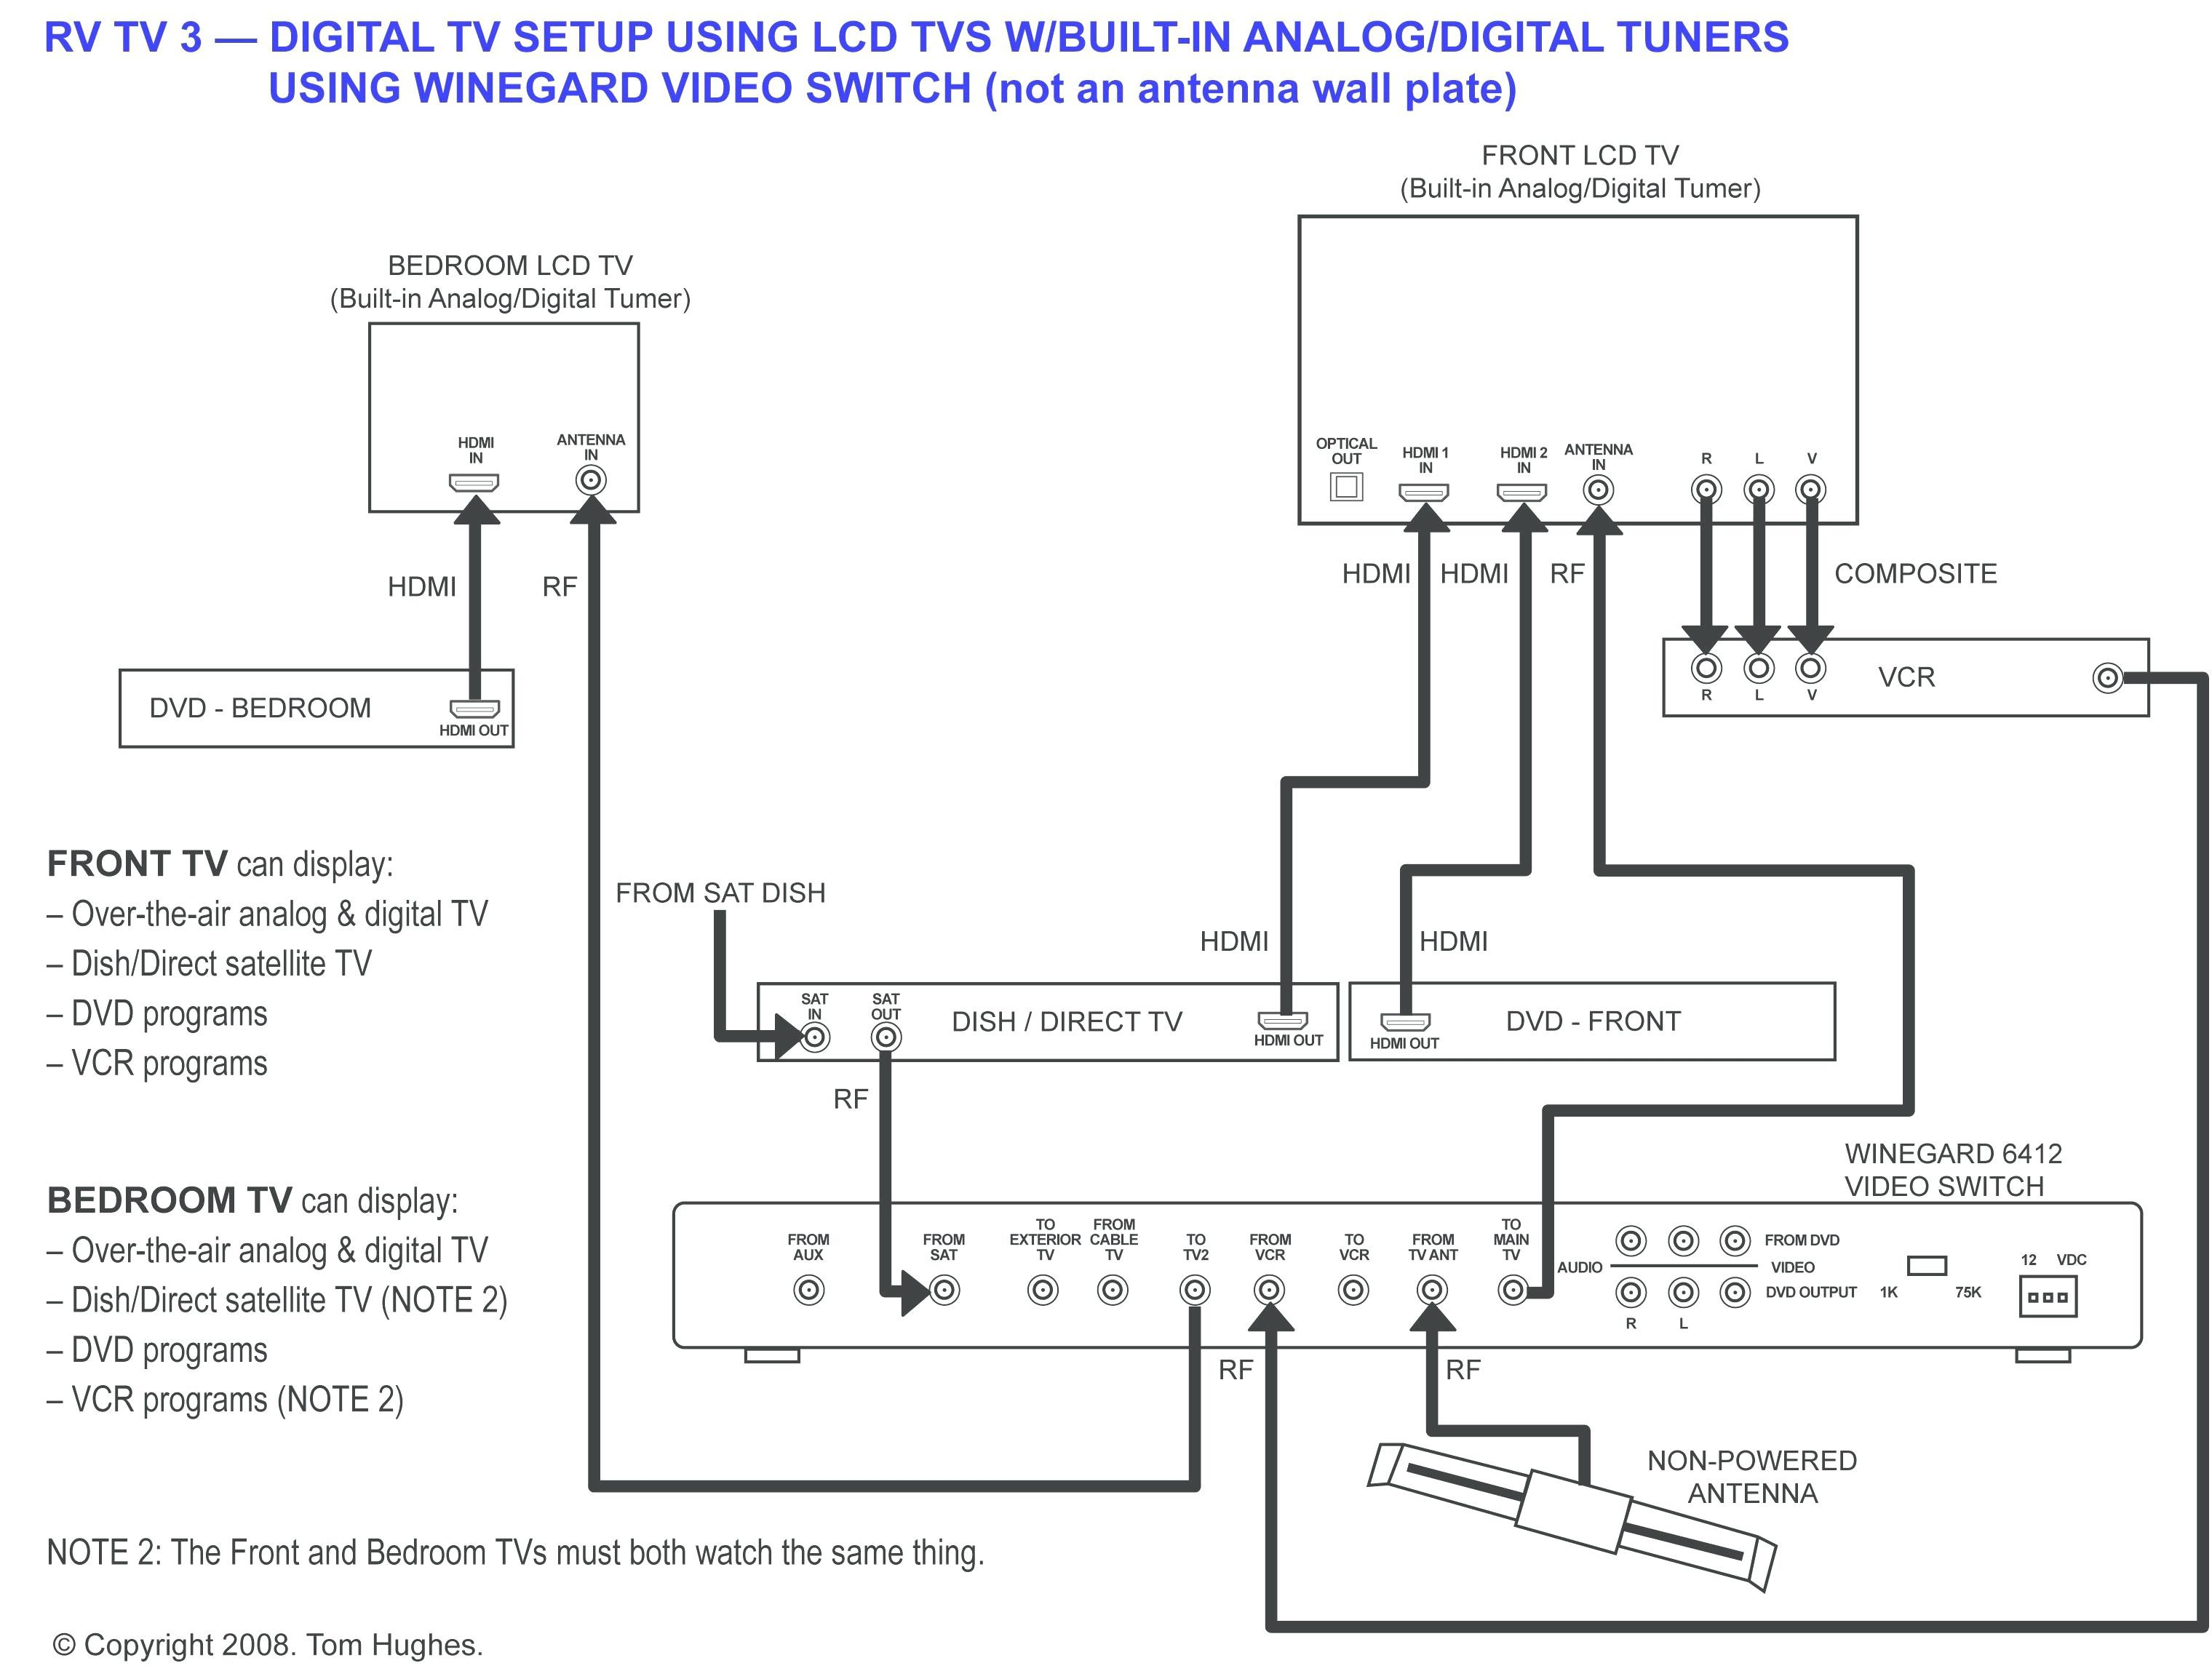 Commax Intercom Wiring Diagram Direct Tv Satellite Dish Wiring Diagram Wiring Of Commax Intercom Wiring Diagram